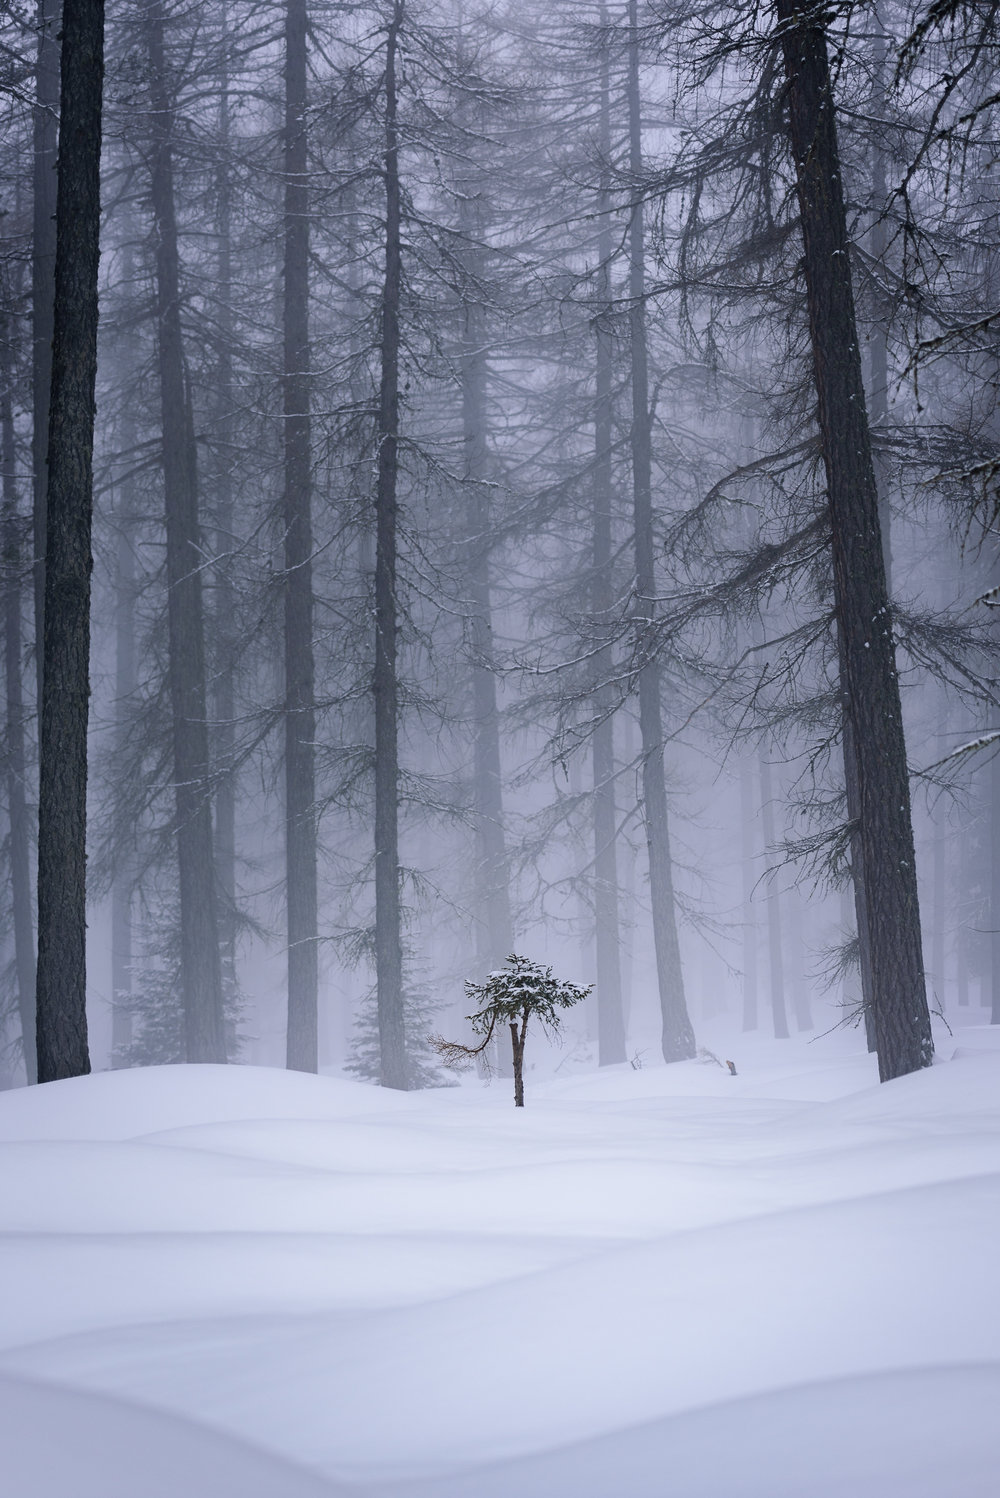 2018-03-03_Web_2167_Alone in the forest.jpg